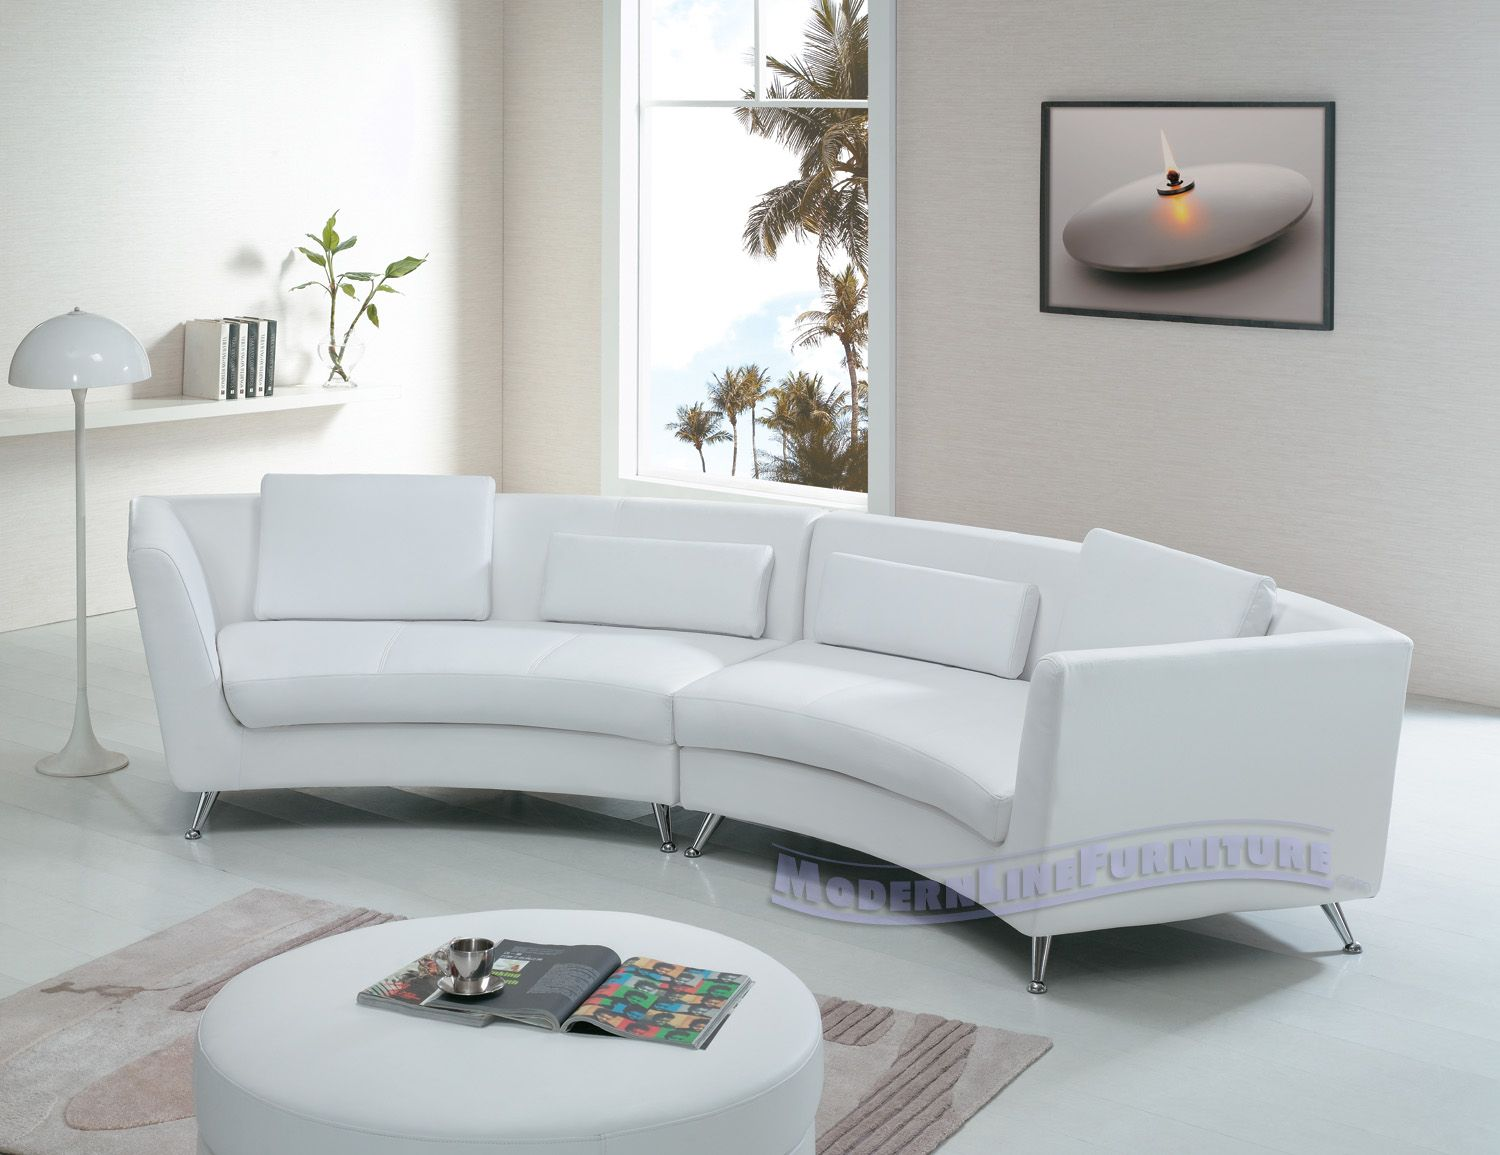 Awe Inspiring Oval Couch Sofa Curved Leather Sofas Curved Couches In Onthecornerstone Fun Painted Chair Ideas Images Onthecornerstoneorg